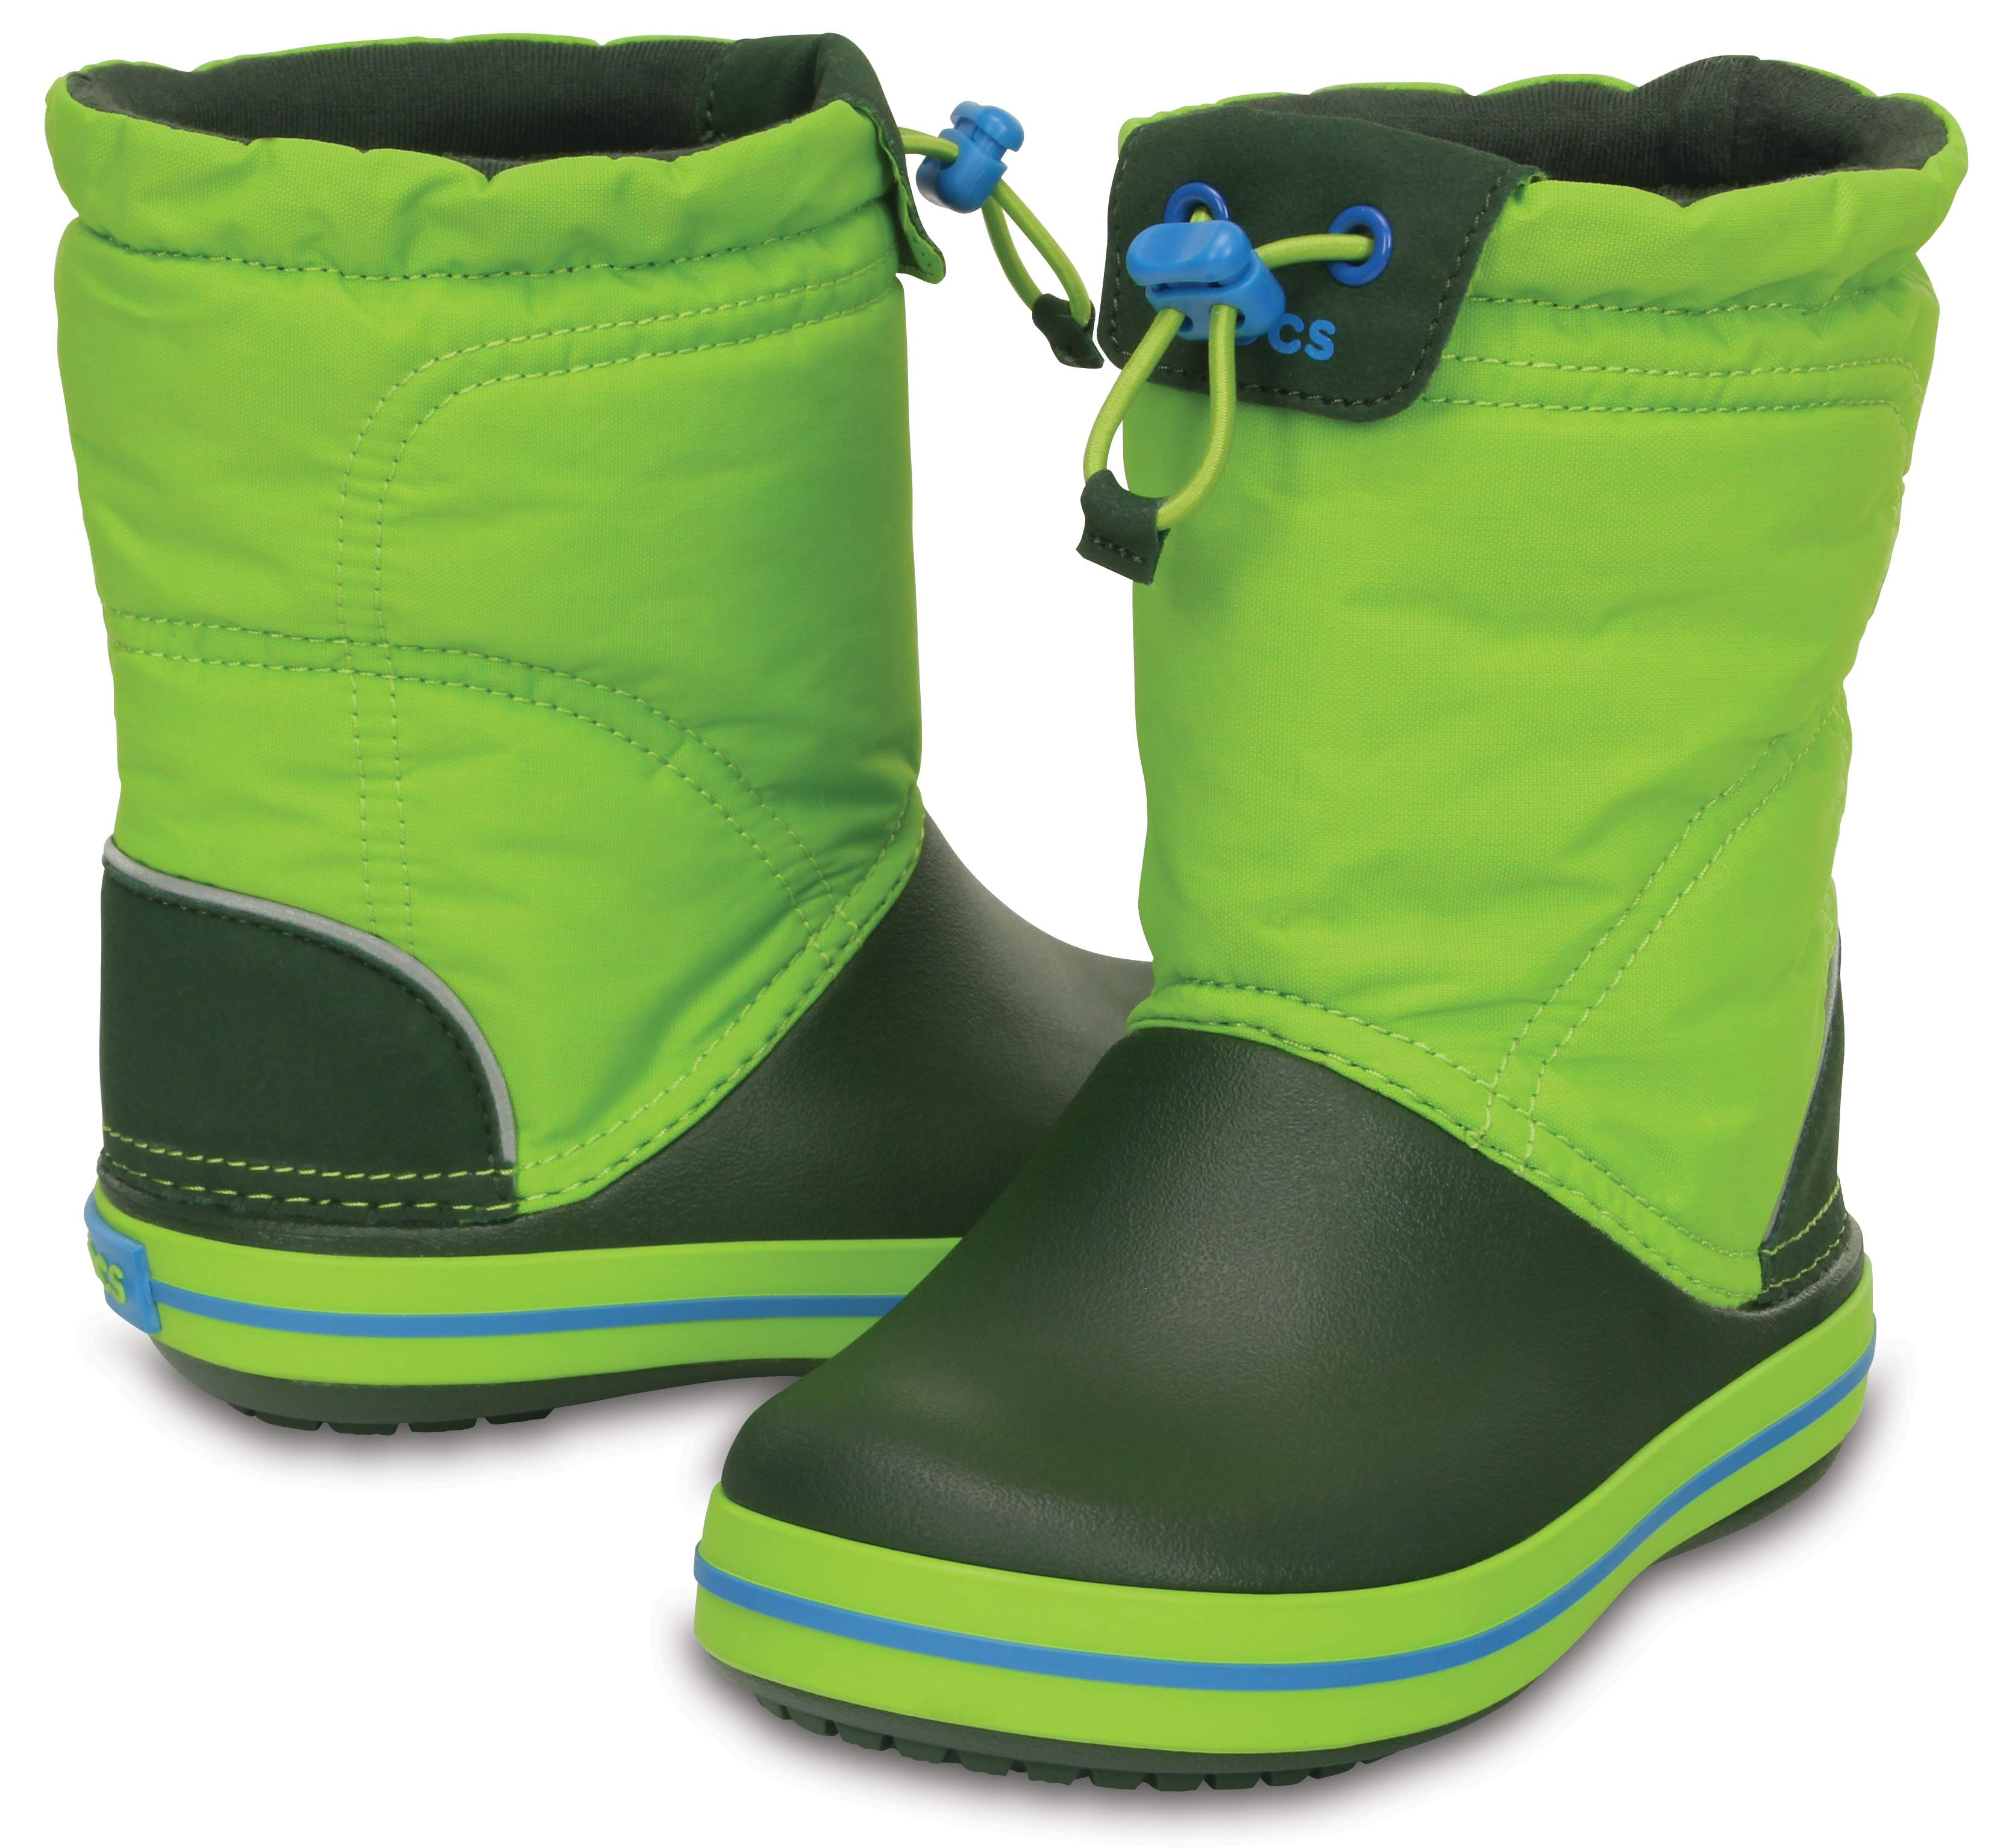 Crocs Kids' Crocband LodgePoint Boot Lime / Forest Green 203509-33T